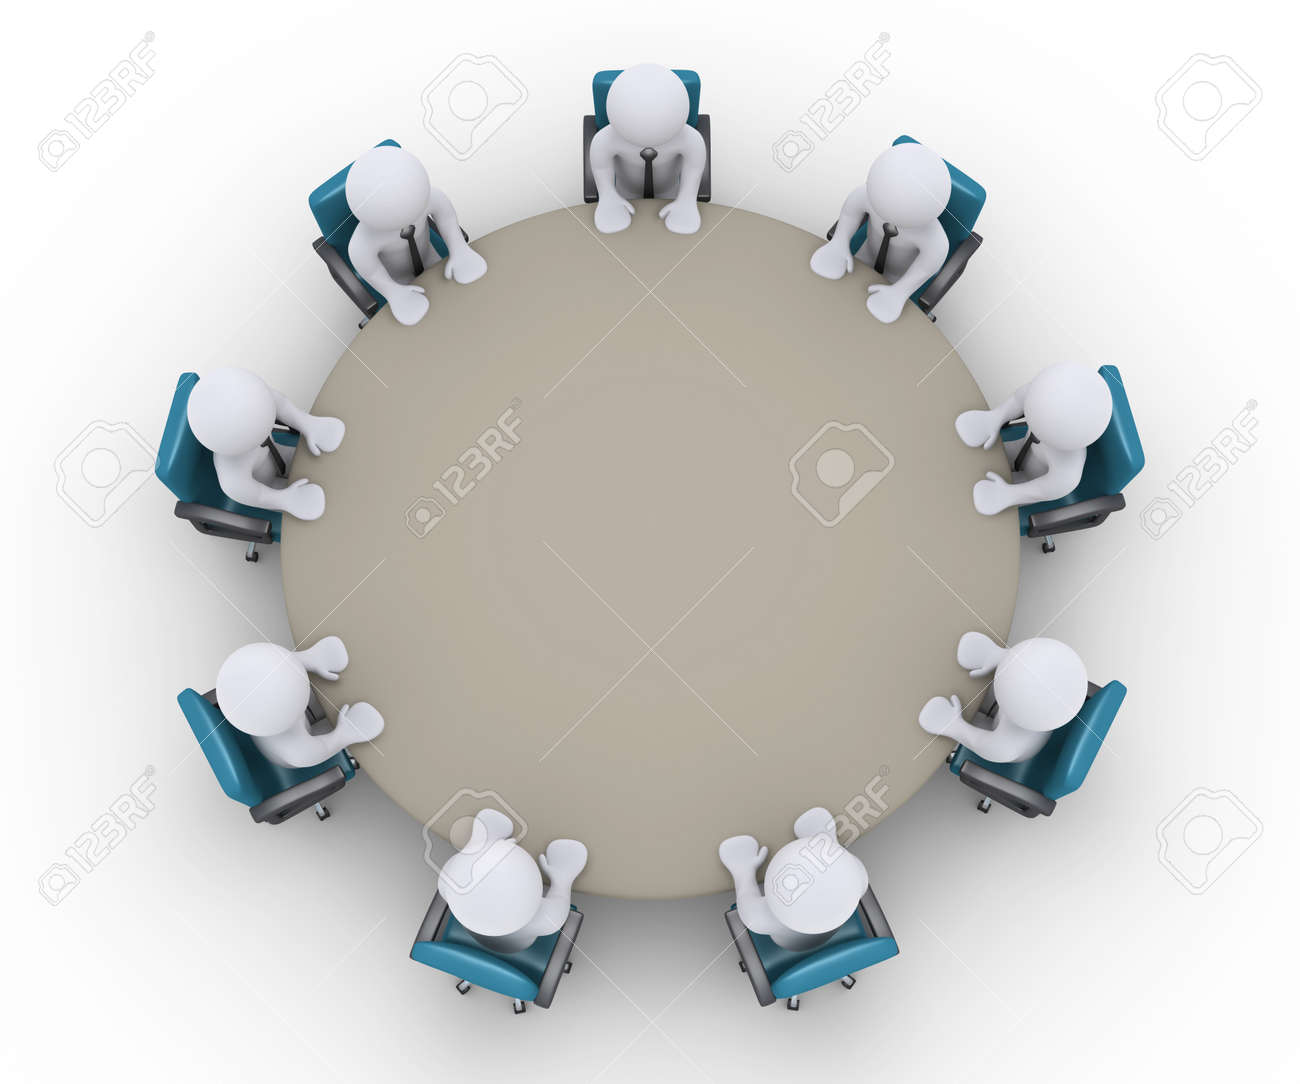 Round table meeting icon - Round Table Meeting 3d Businessmen Are Sitting Around A Table As An Office Meeting